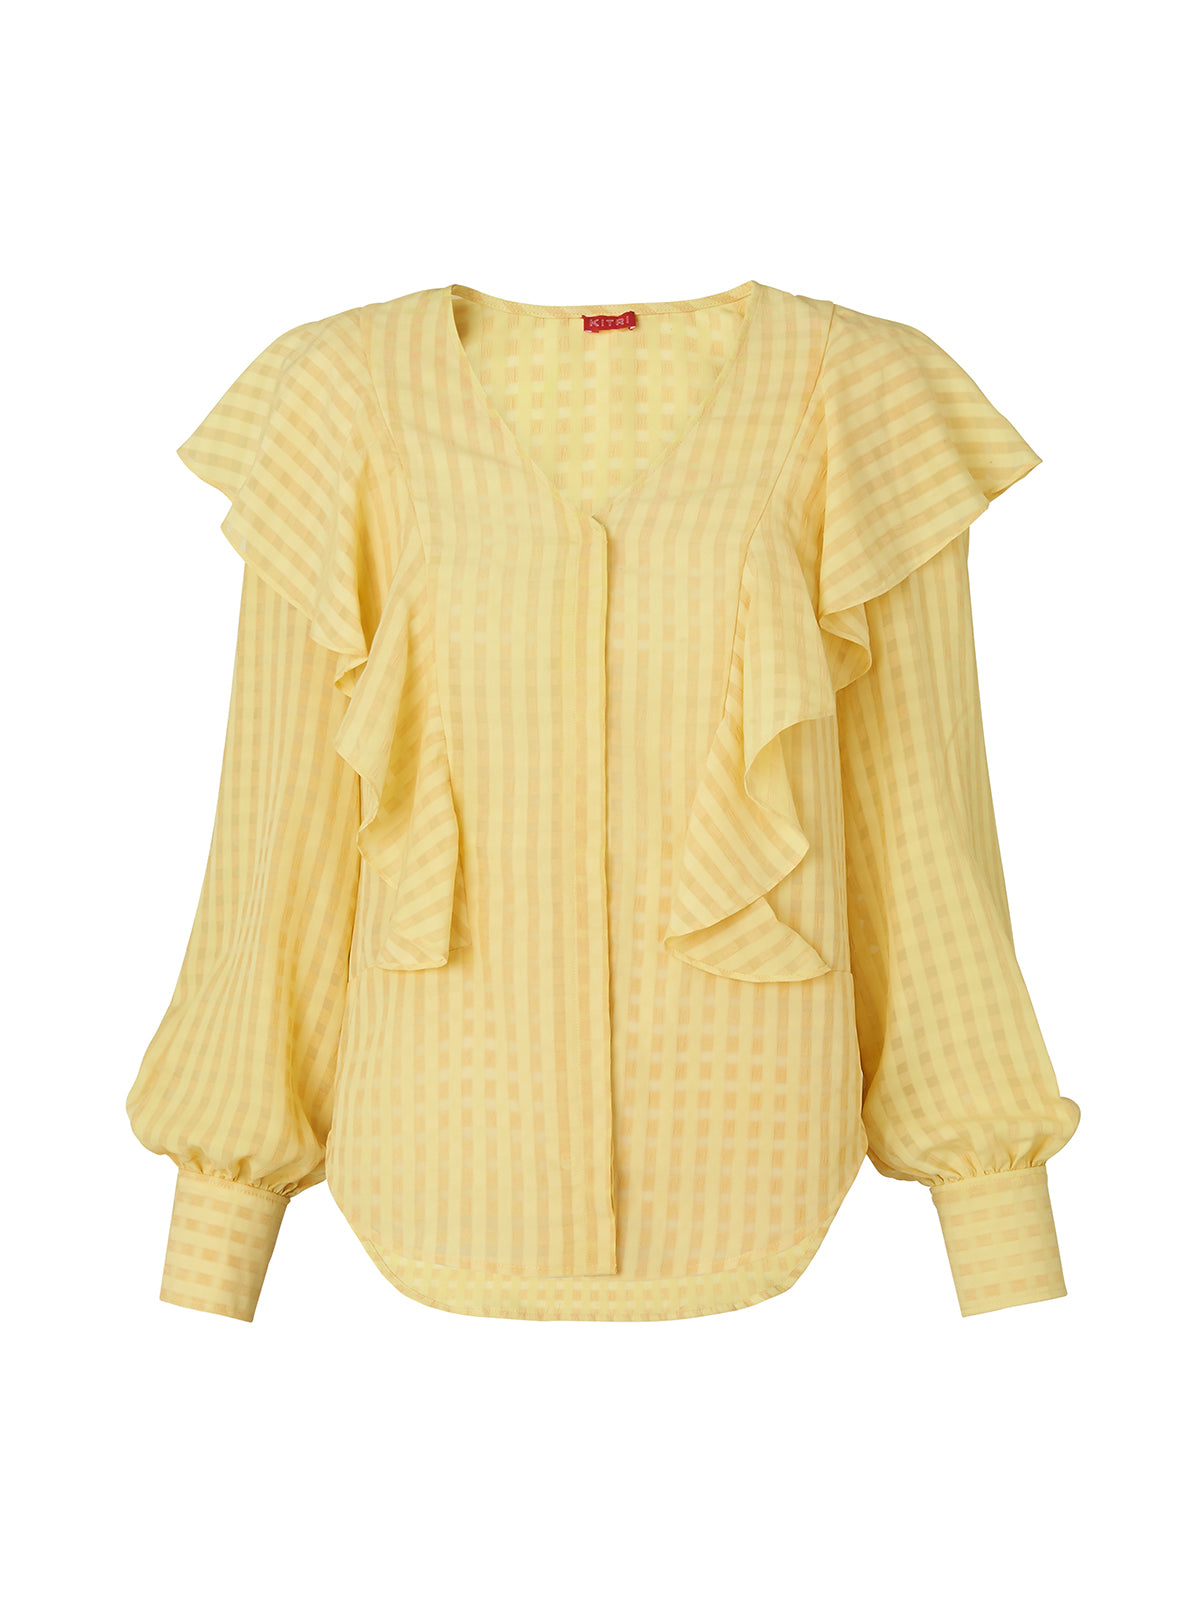 Akane Yellow Frill V-Neck Long Sleeve Blouse by KITRI Studio